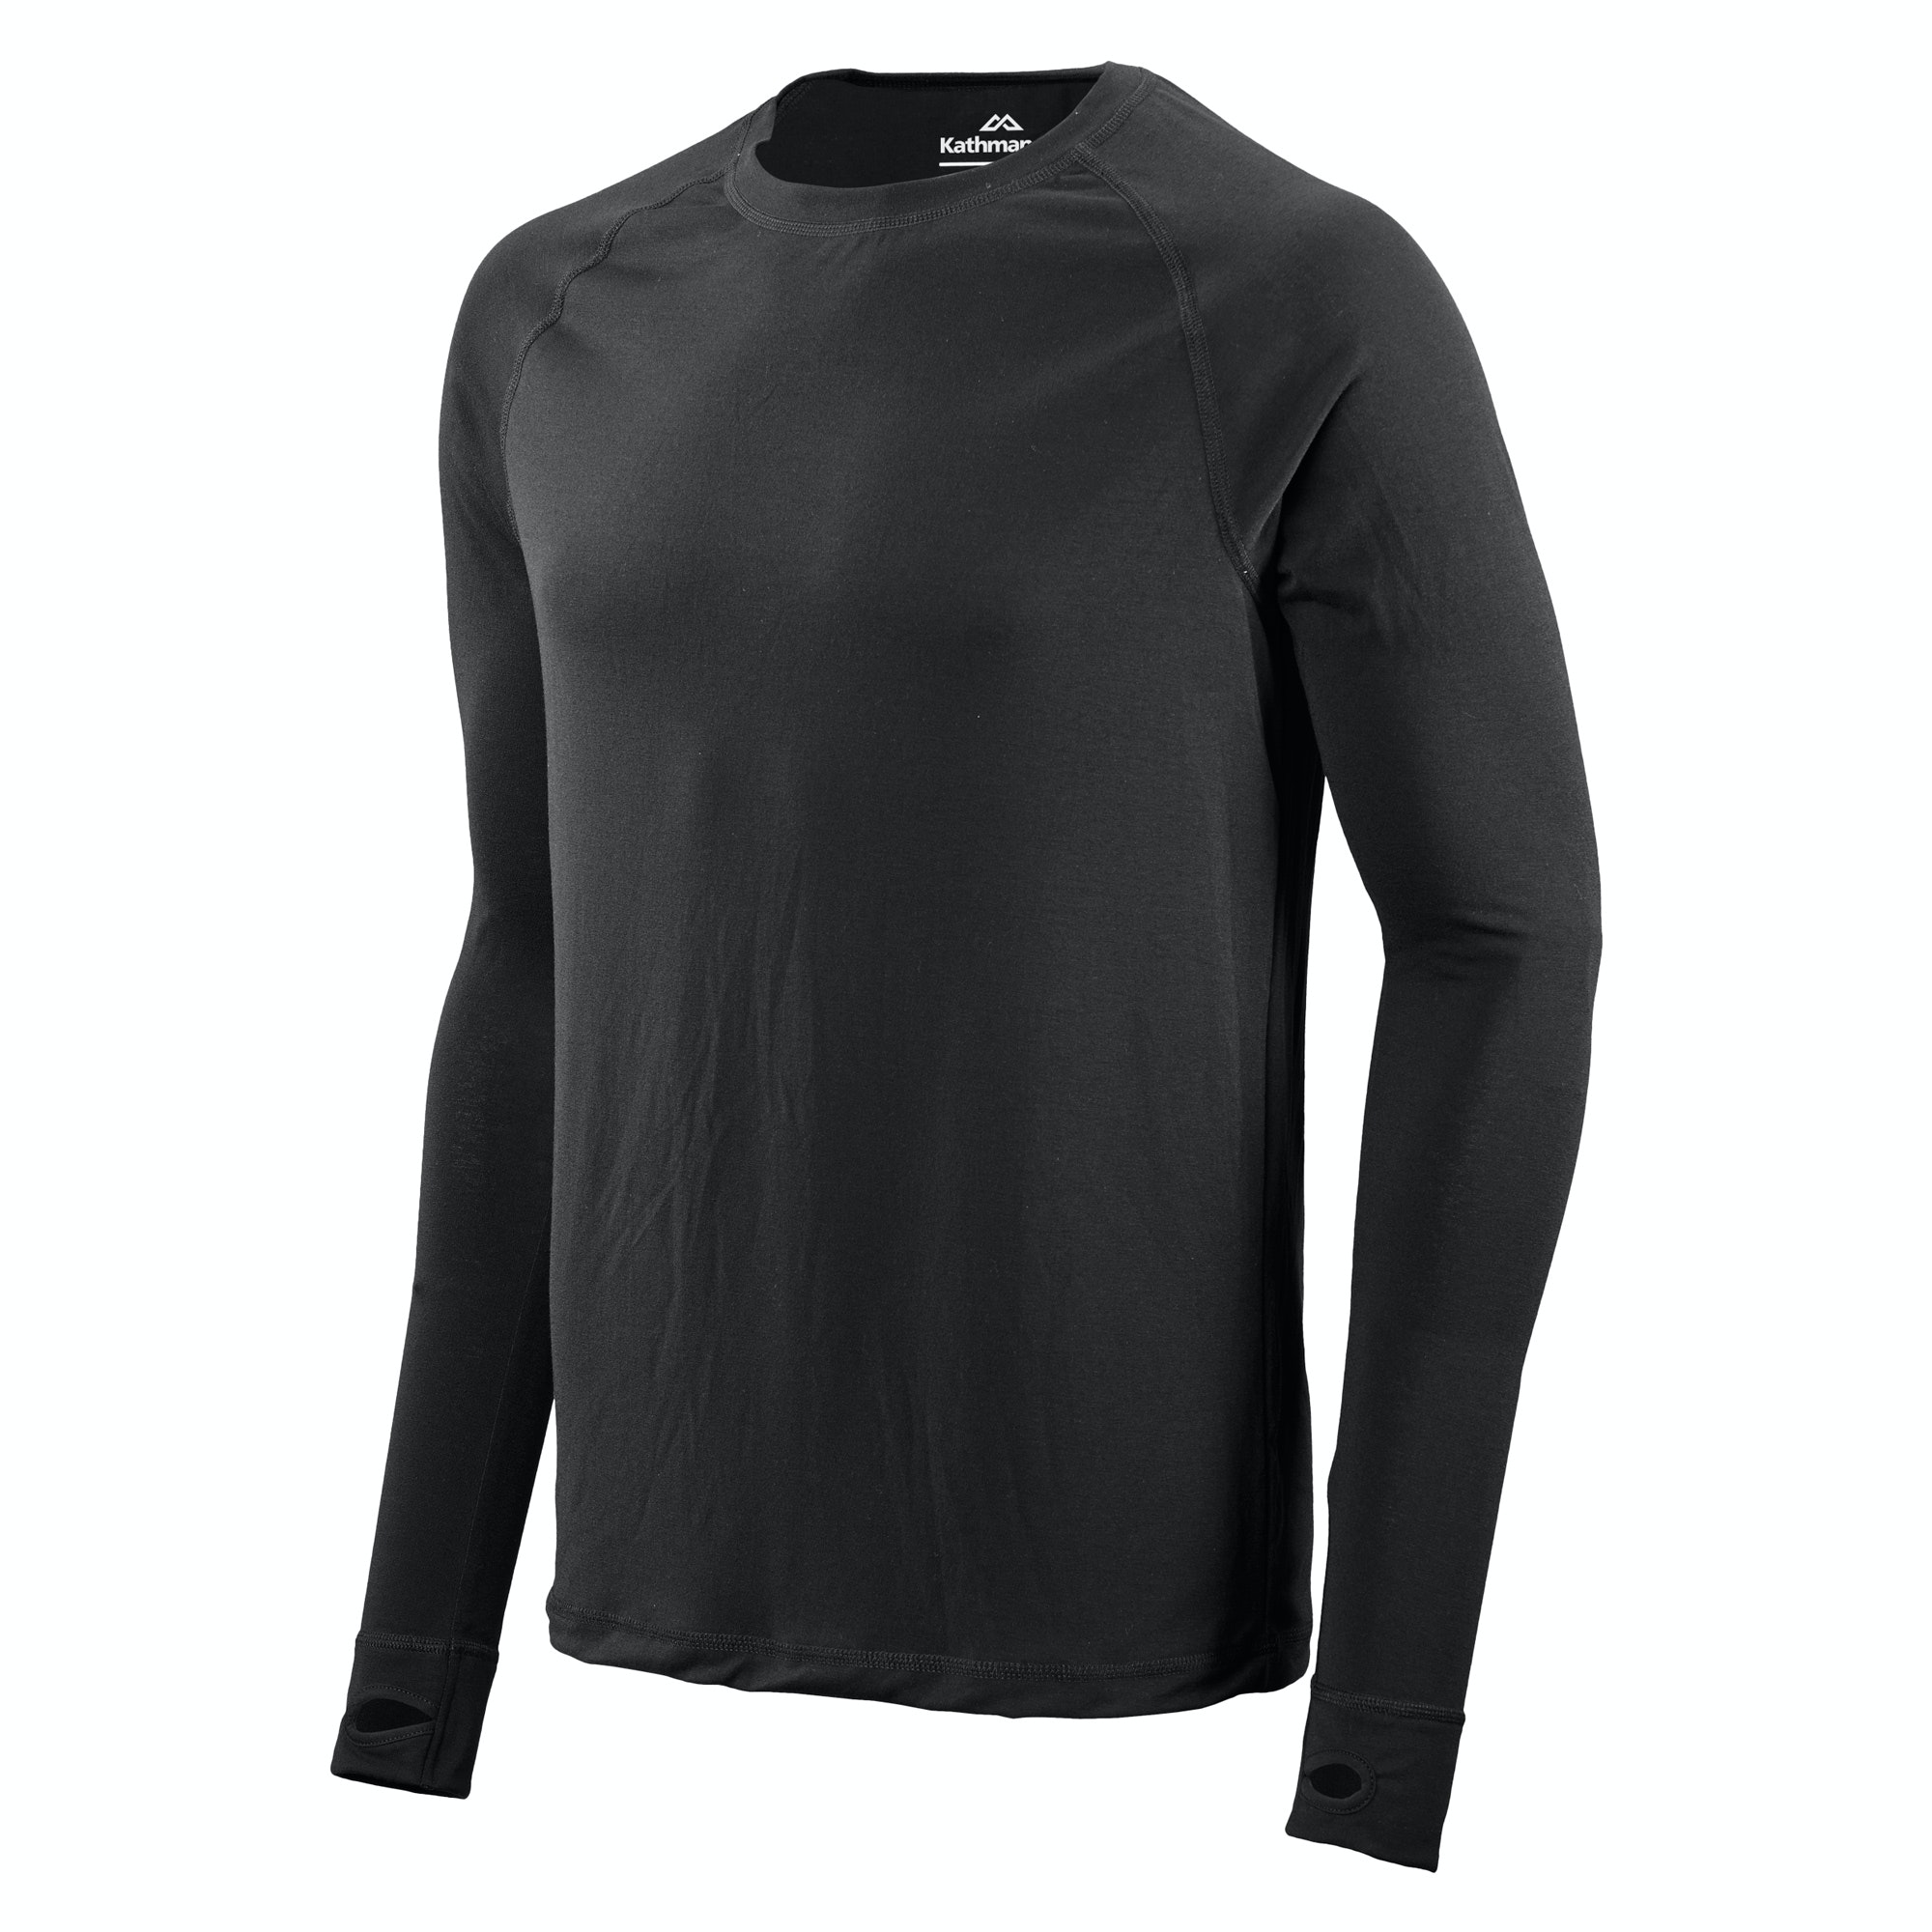 more photos enjoy big discount how to get Details about NEW Kathmandu KMDMotion Men's Thermal Top